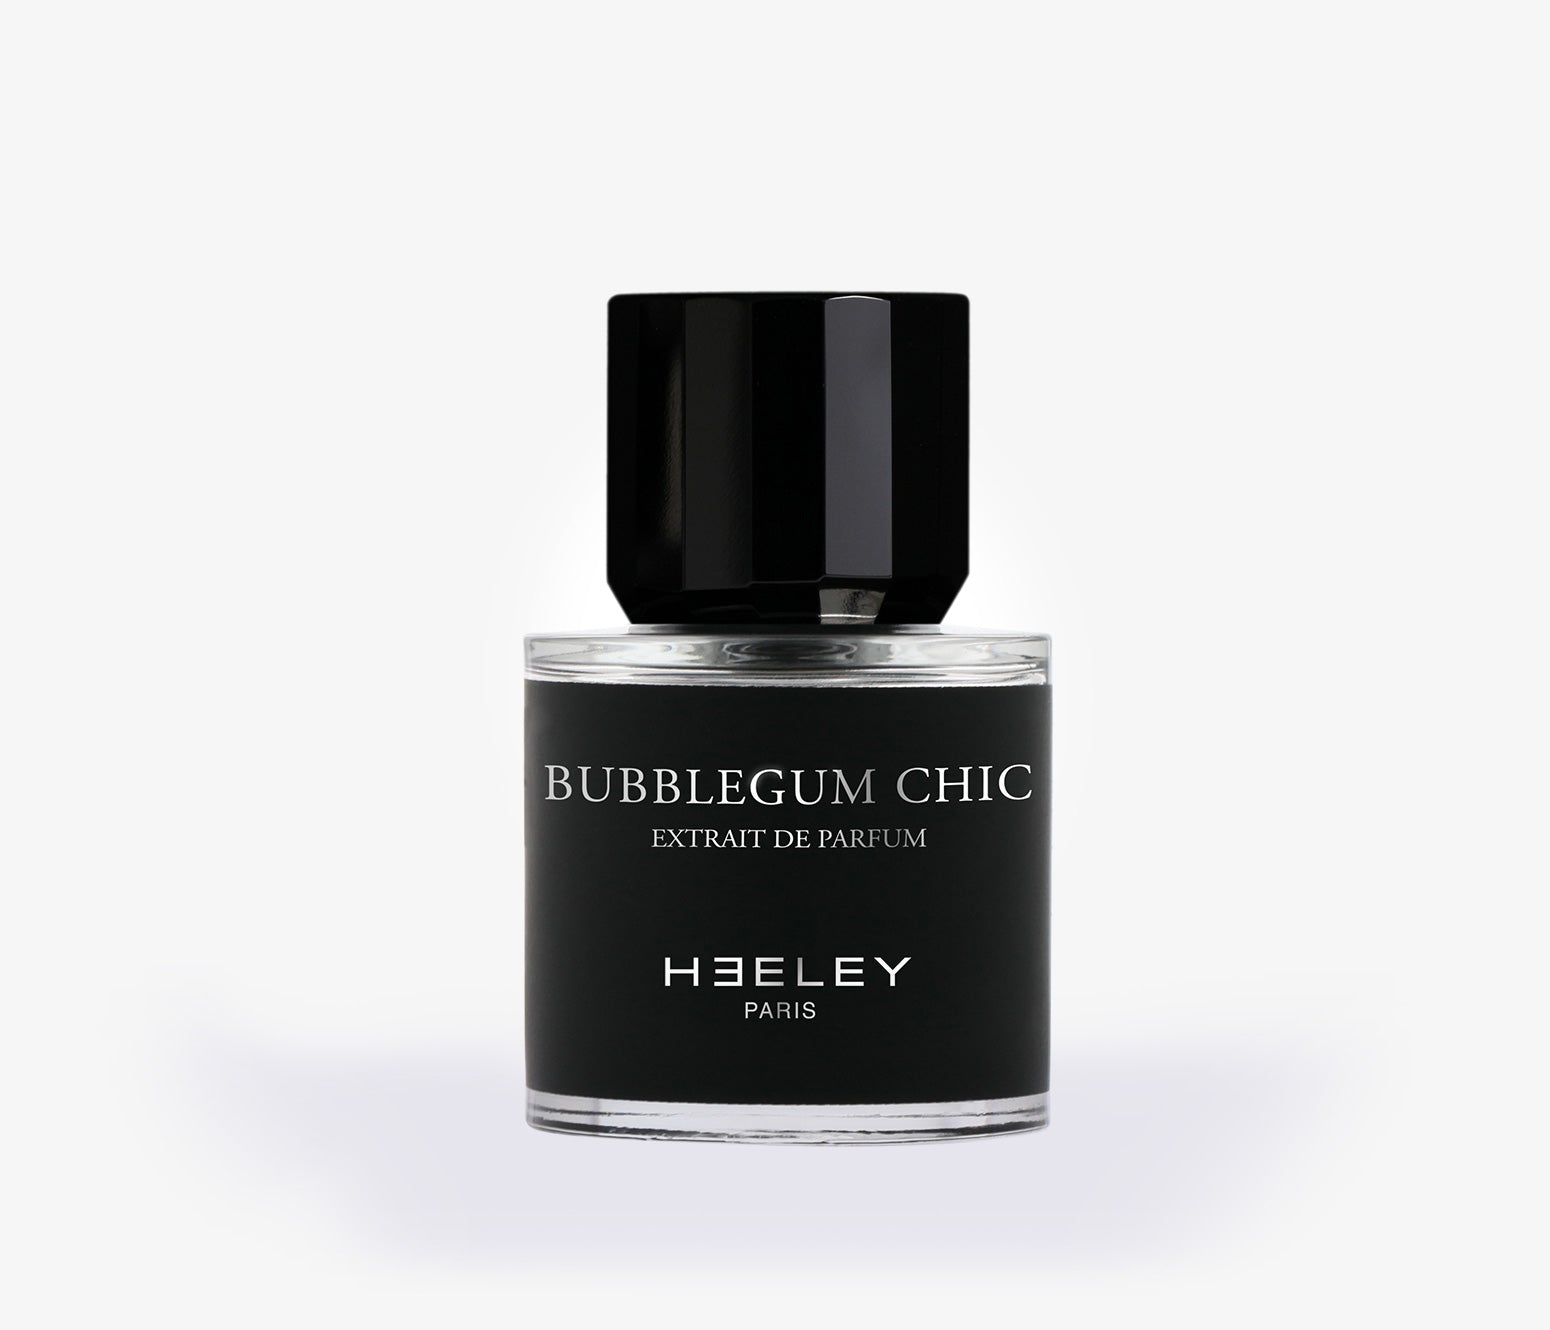 Heeley - Bubblegum Chic Extrait